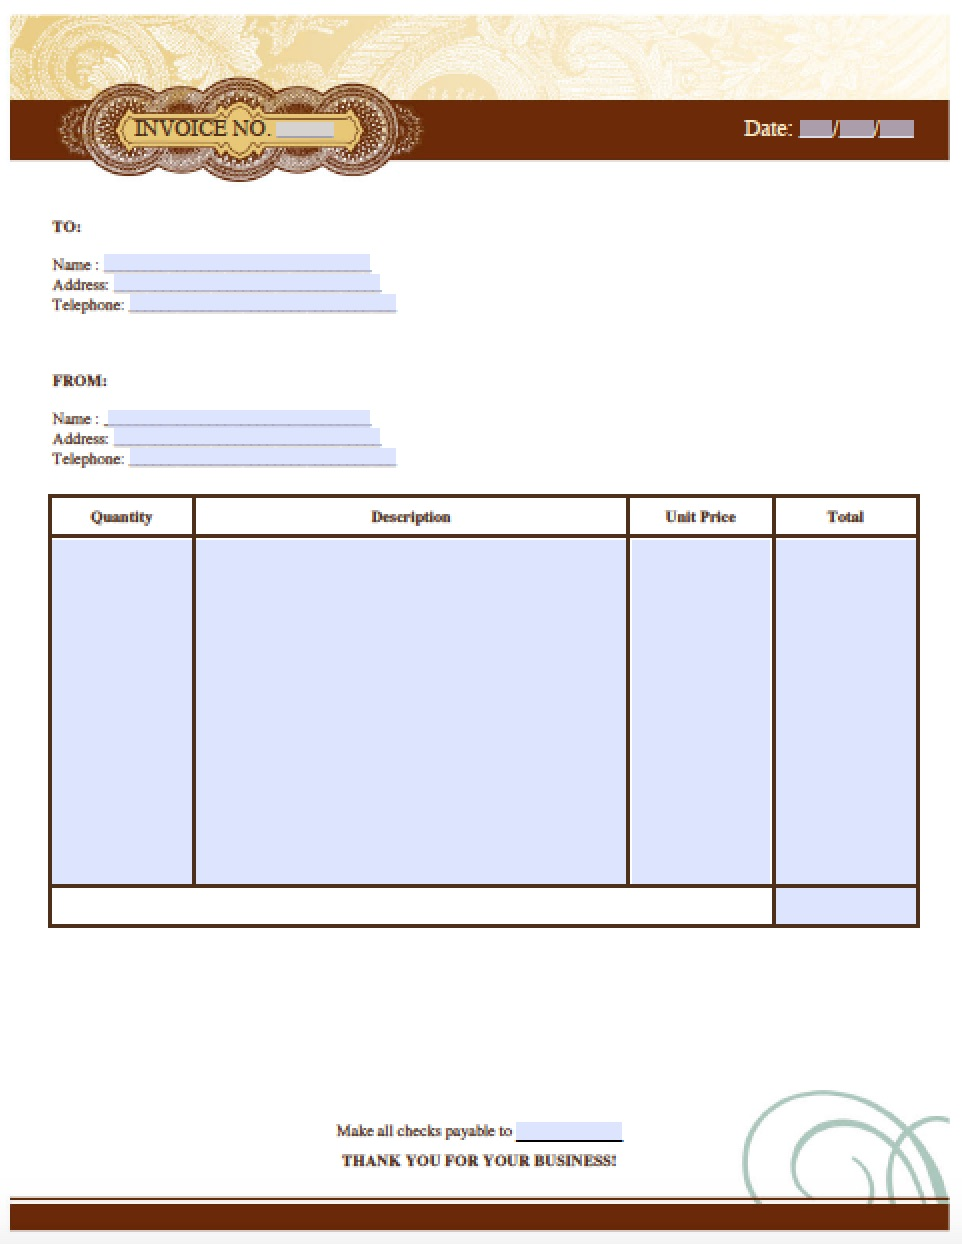 Free Blank Invoice Templates In PDF, Word, U0026 Excel  How To Make A Invoice Template In Word